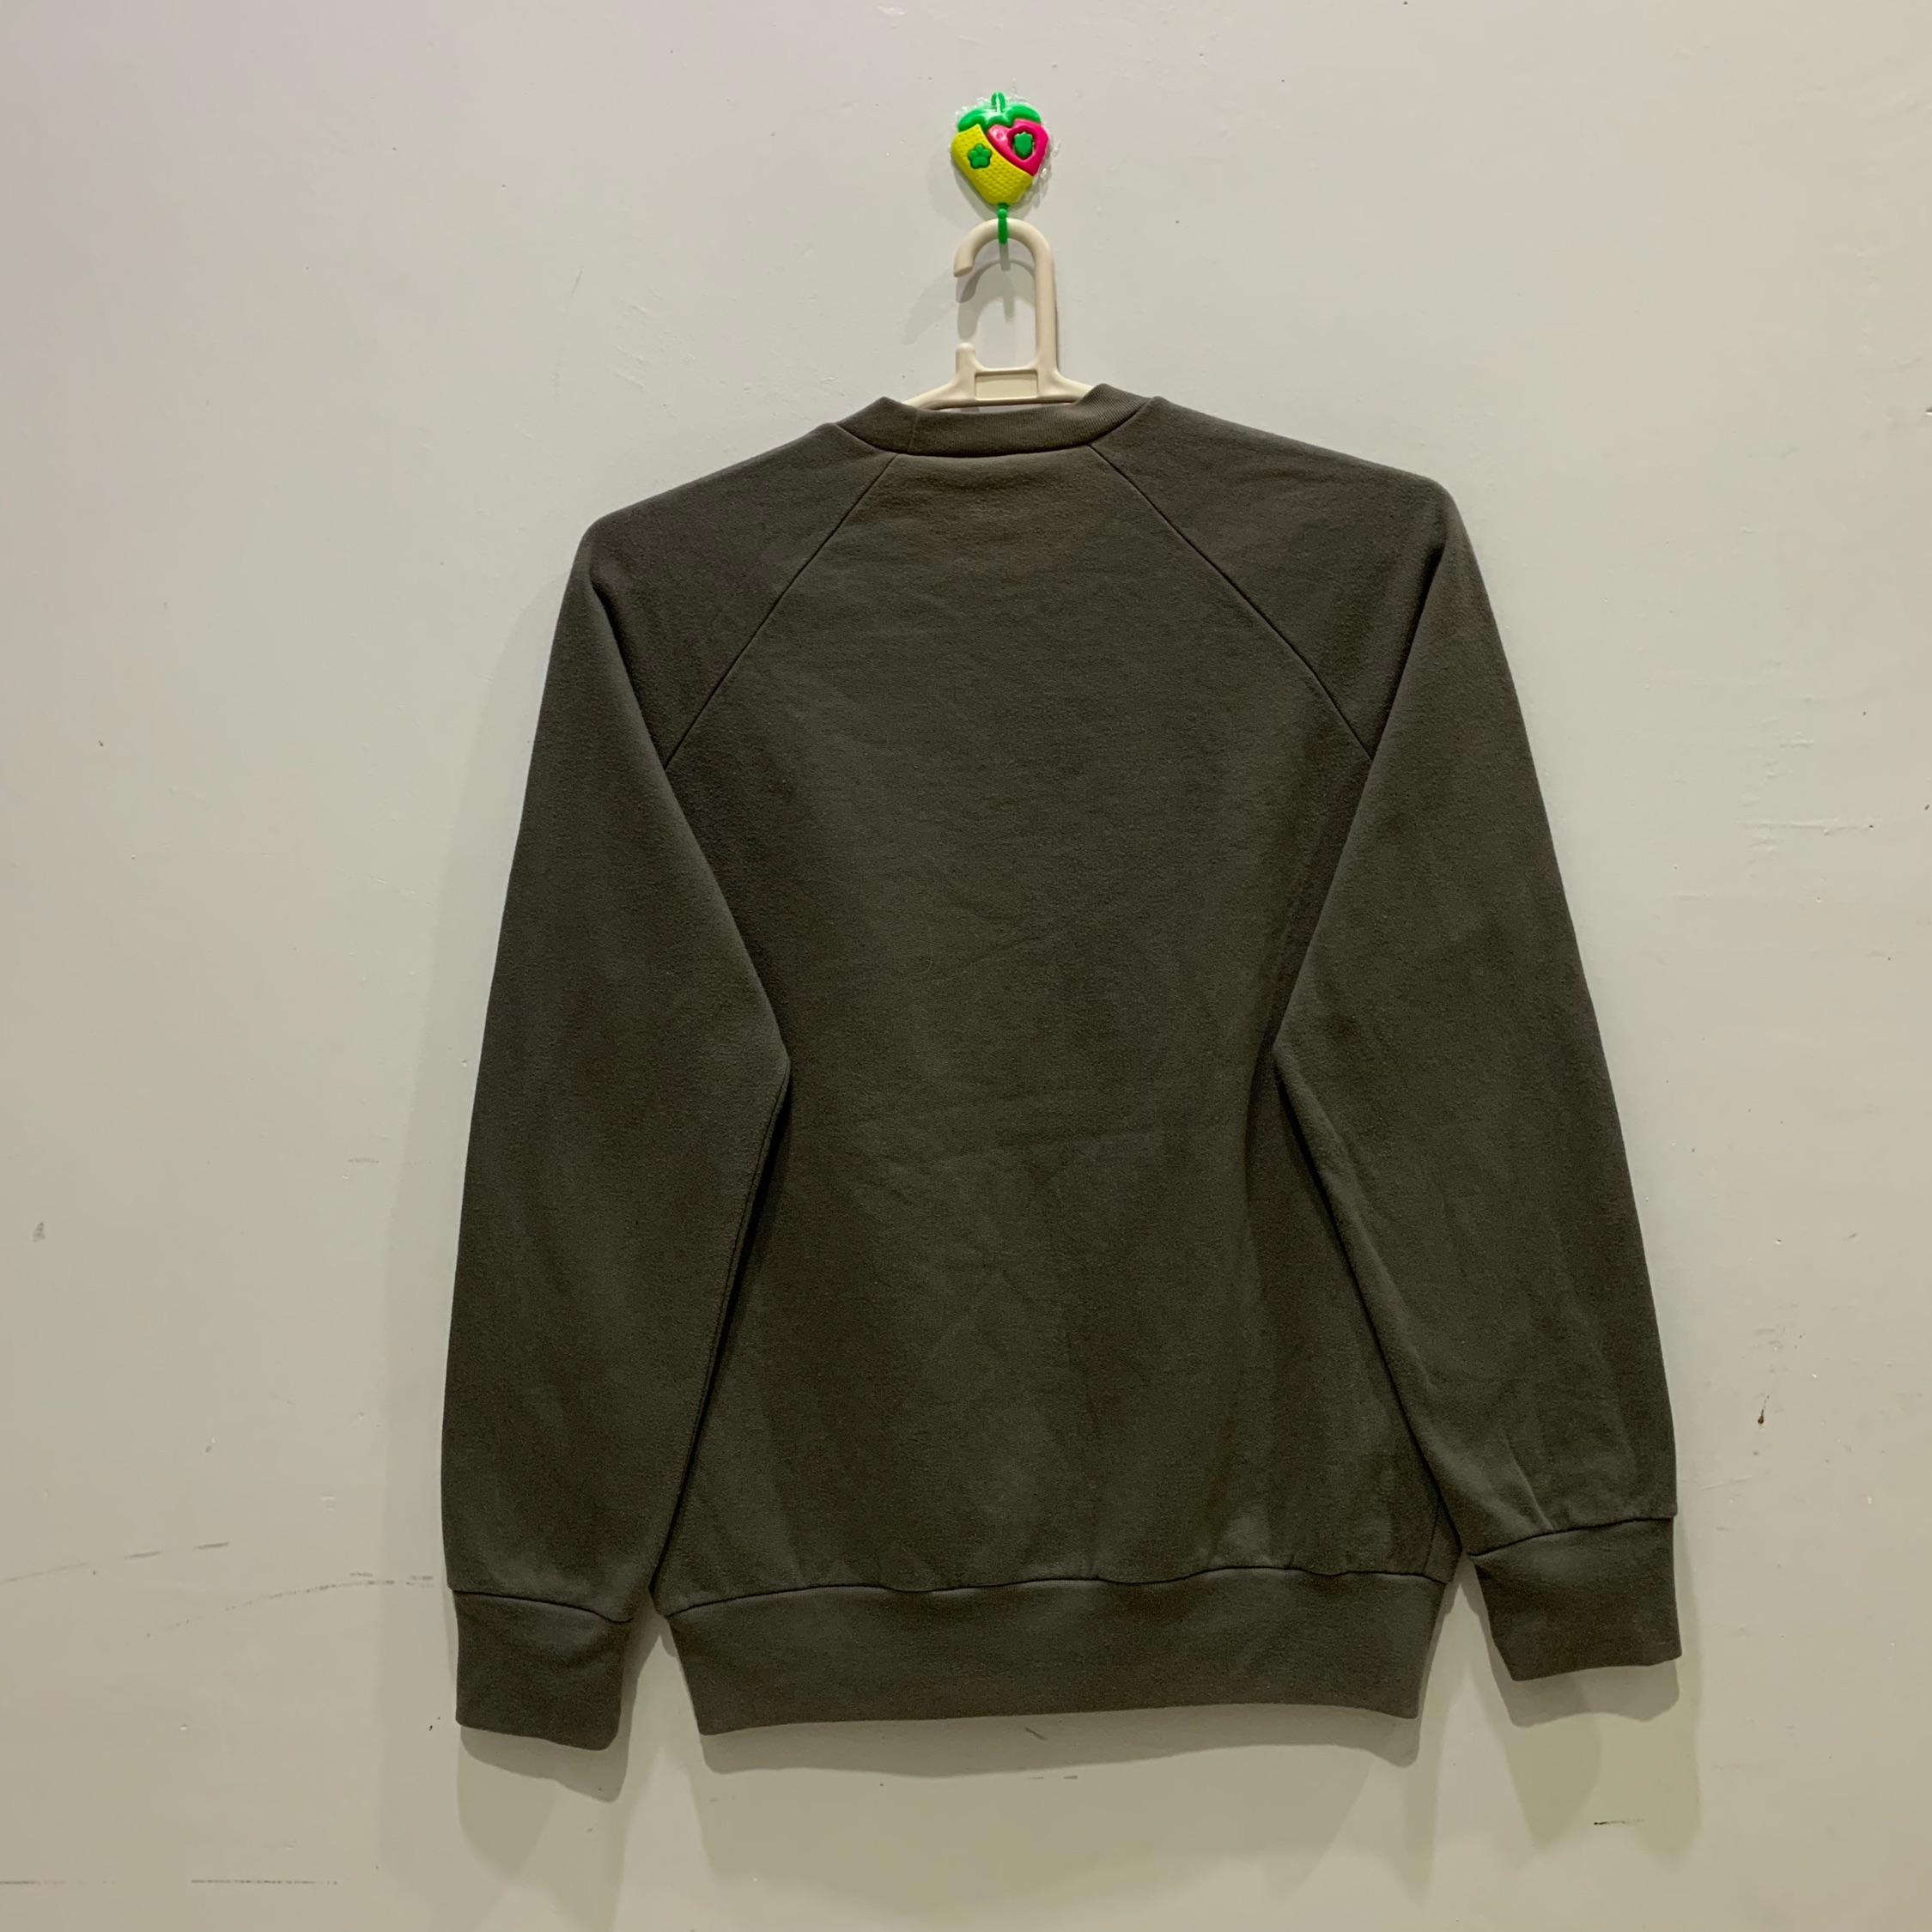 55Dsl Sweatshirts Size M Made In Portugal Fits L